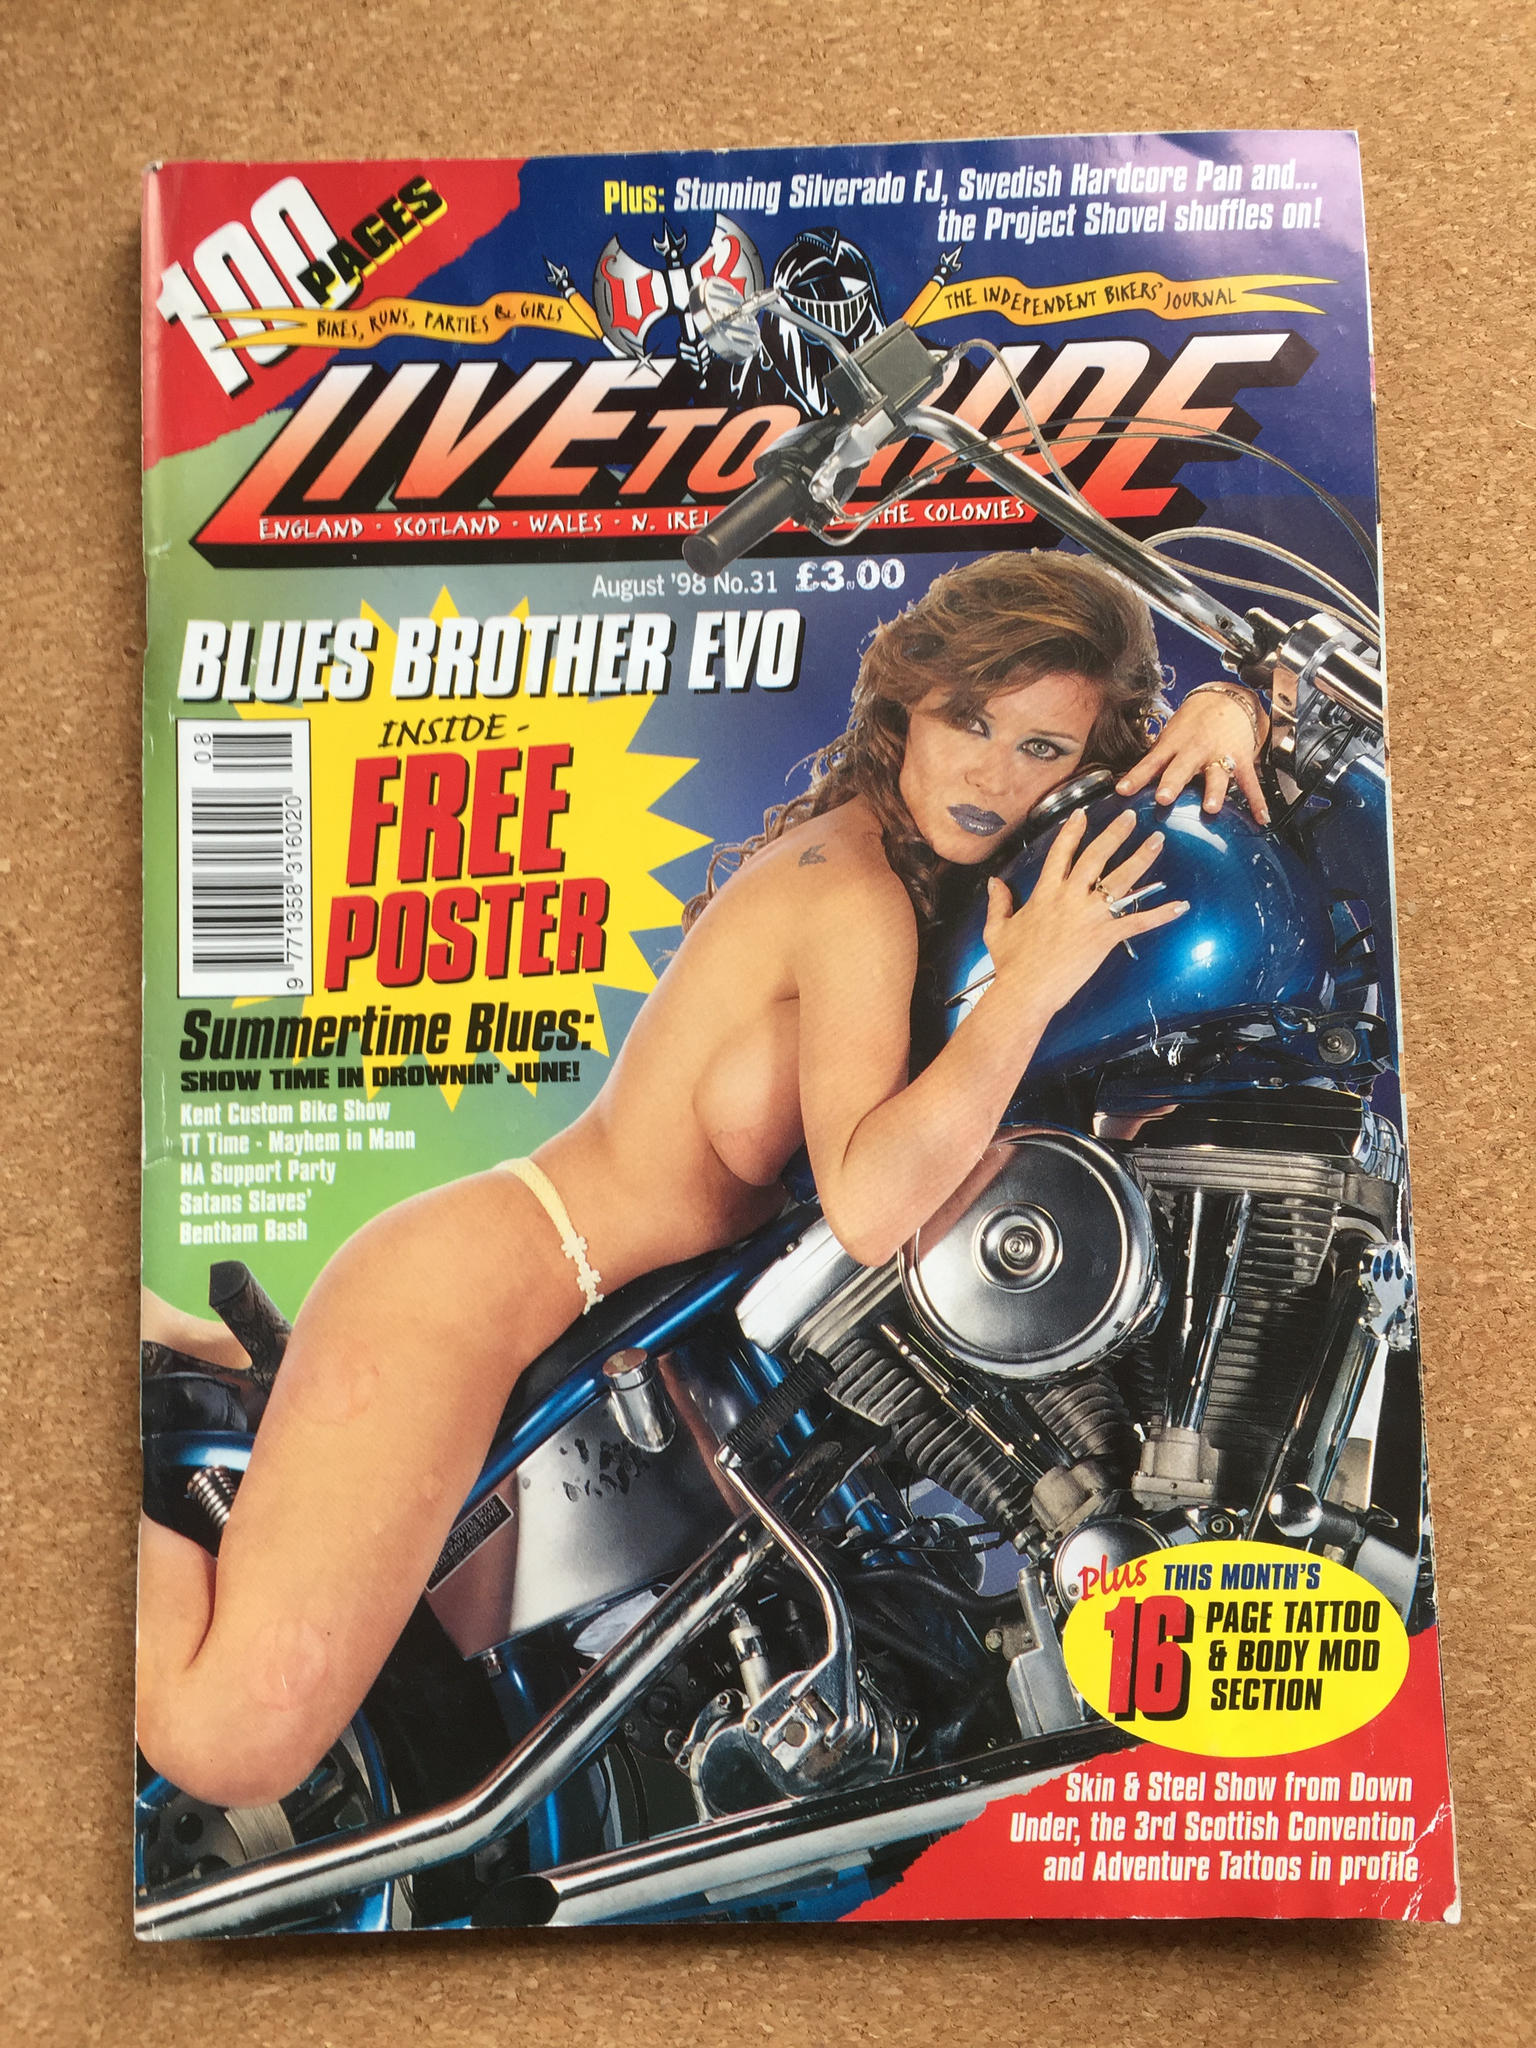 Vintage Live to Ride Magazine August 1998 No. 31